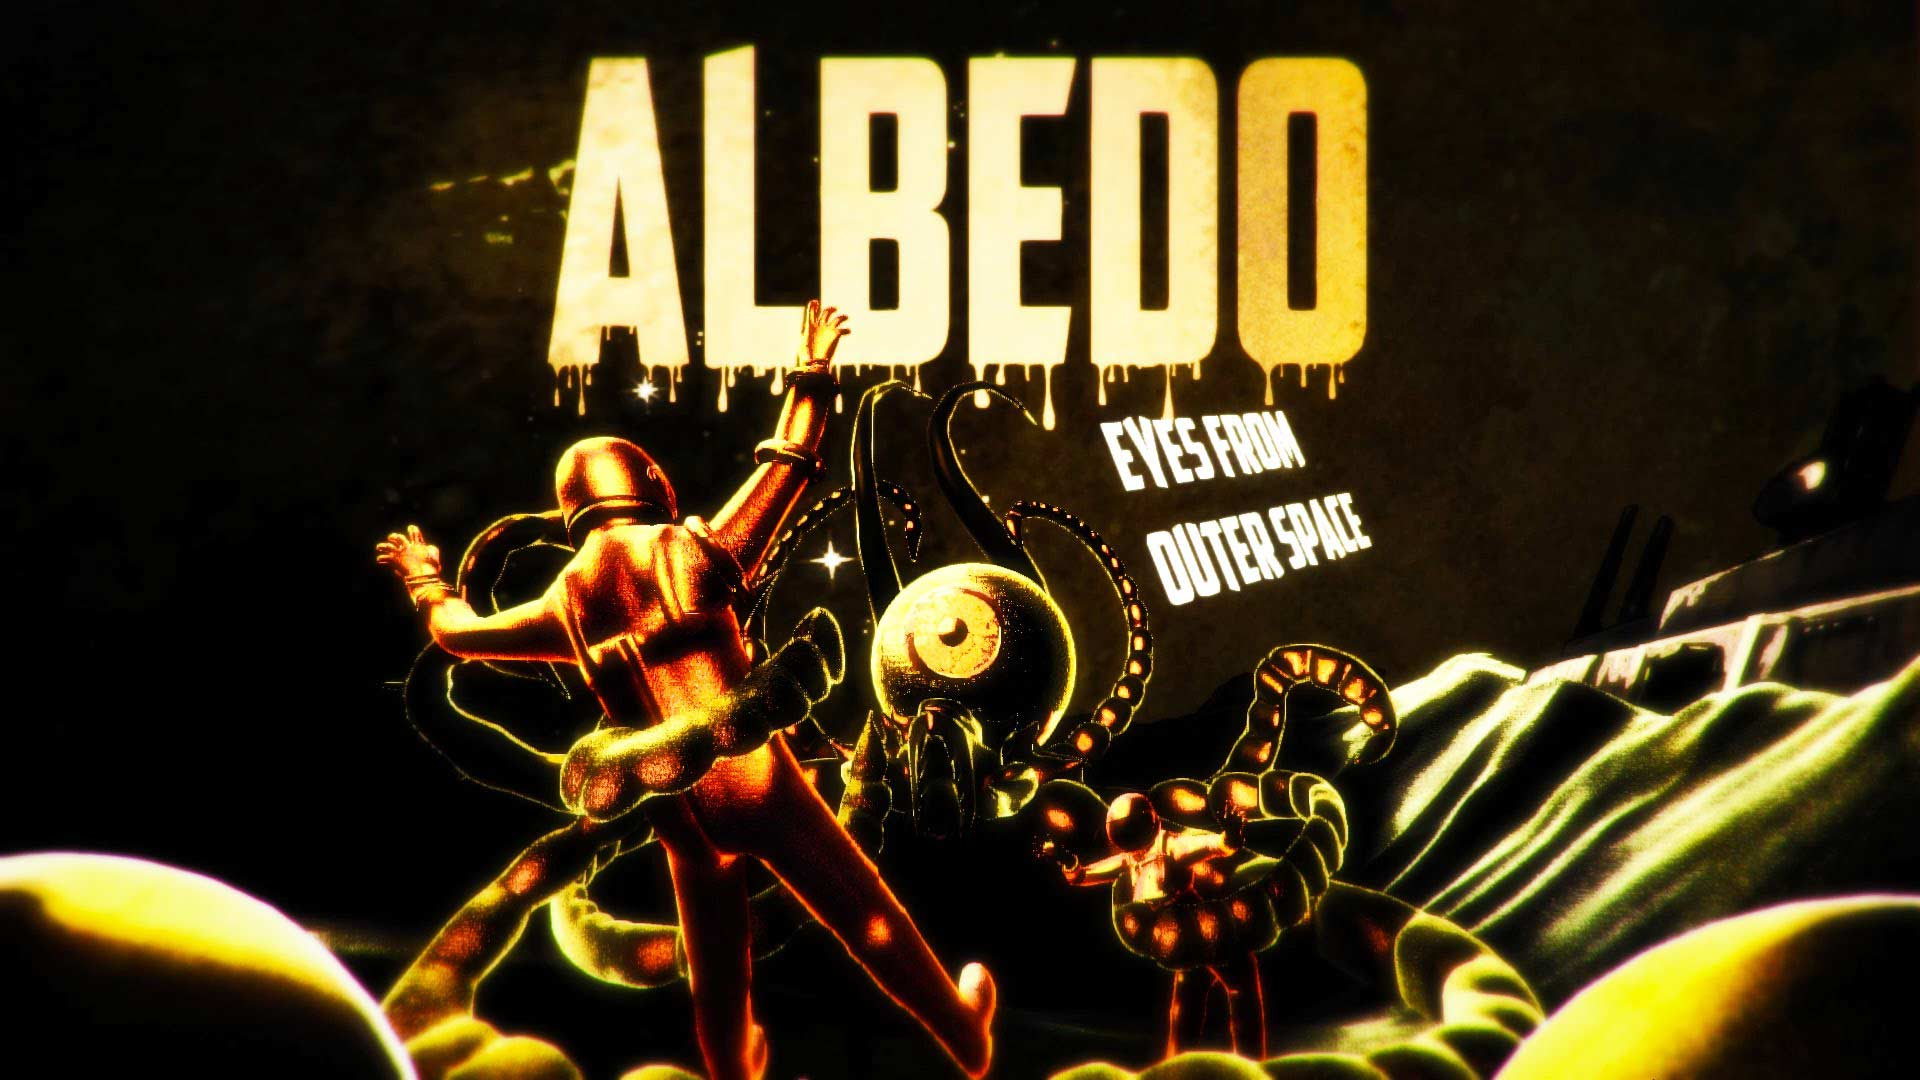 albedo-eyes-from-outer-space-01